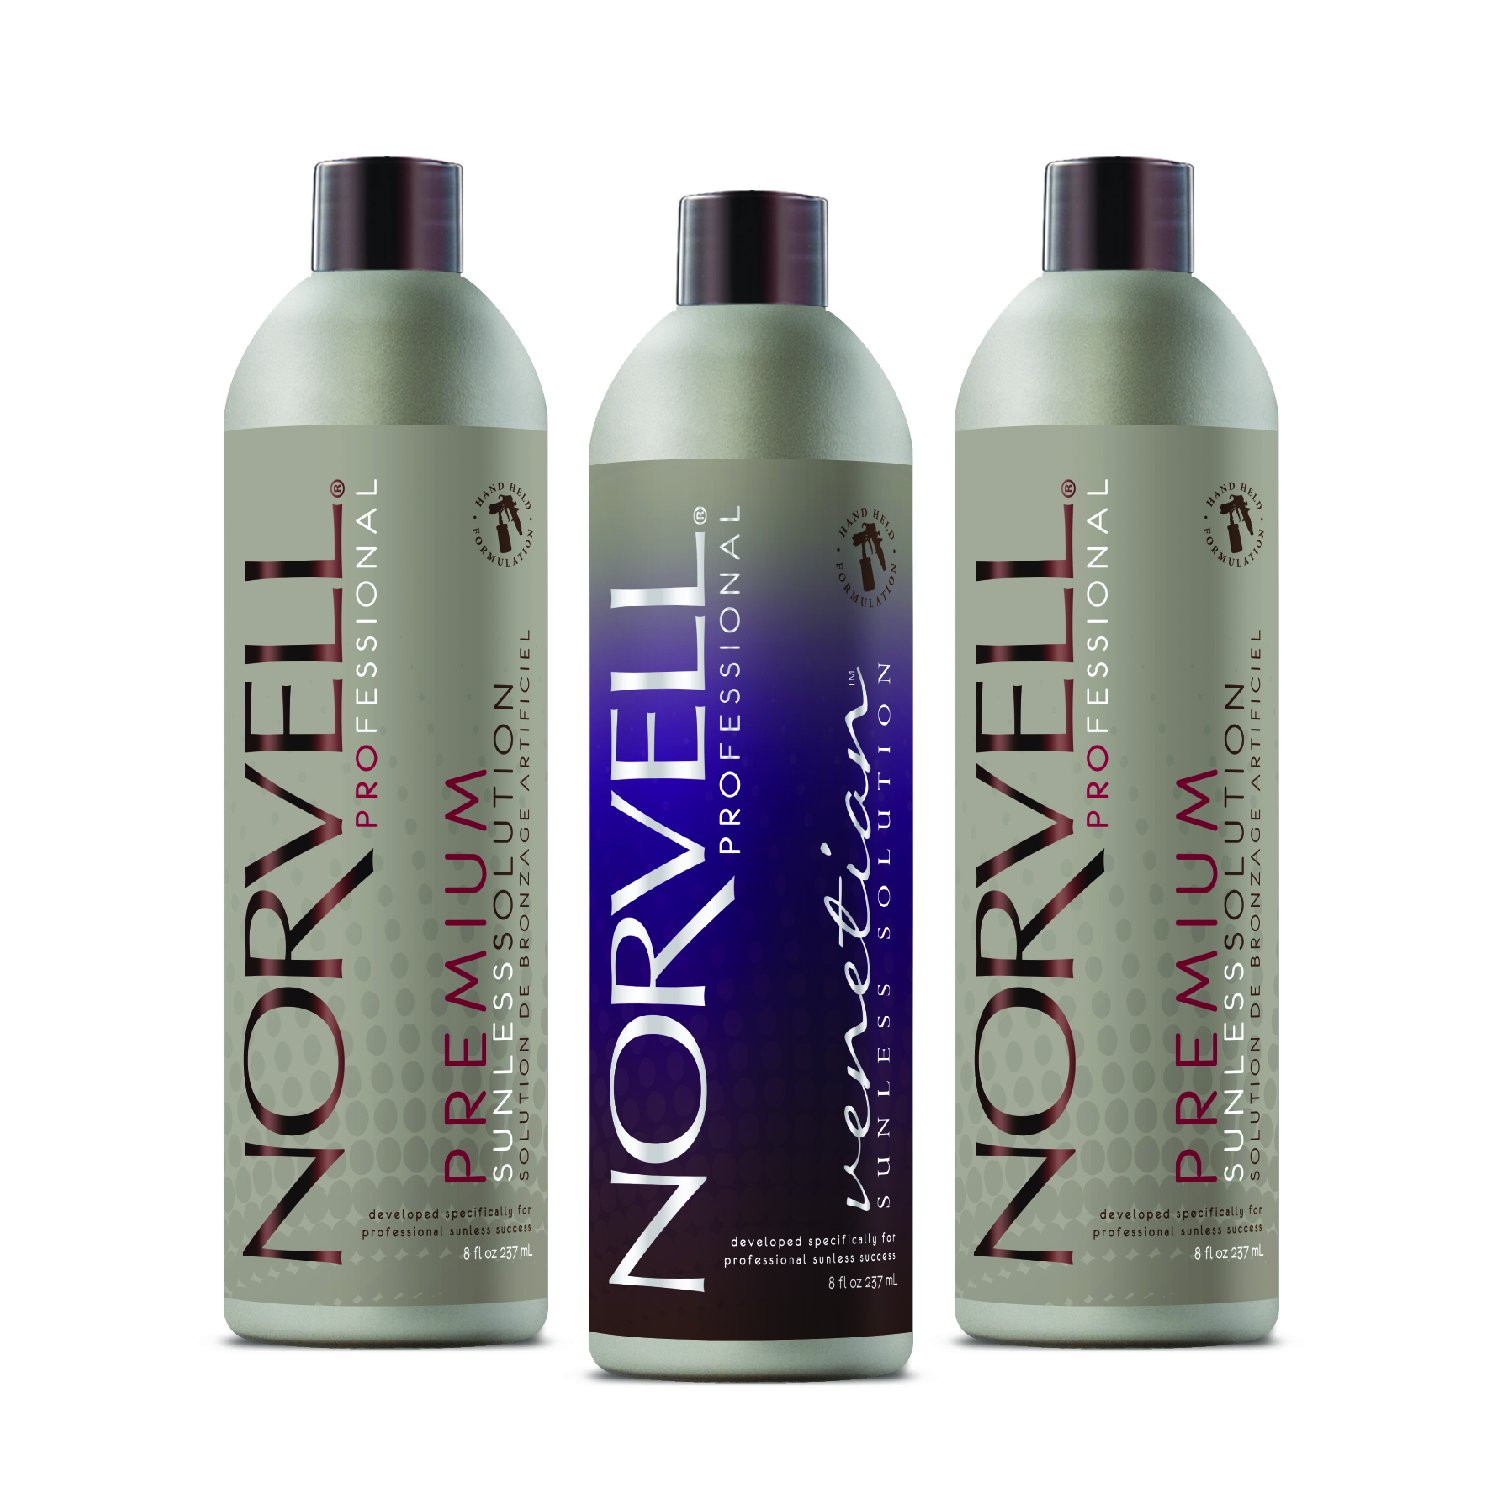 Norvell Sunless Kit - M1000 Mobile HVLP Spray Tan Airbrush Machine + 8 oz Tanning Solutions in Clear Plus, Venetian and Dark + Norvell Training Program (Retail Value $490) by Norvell (Image #4)